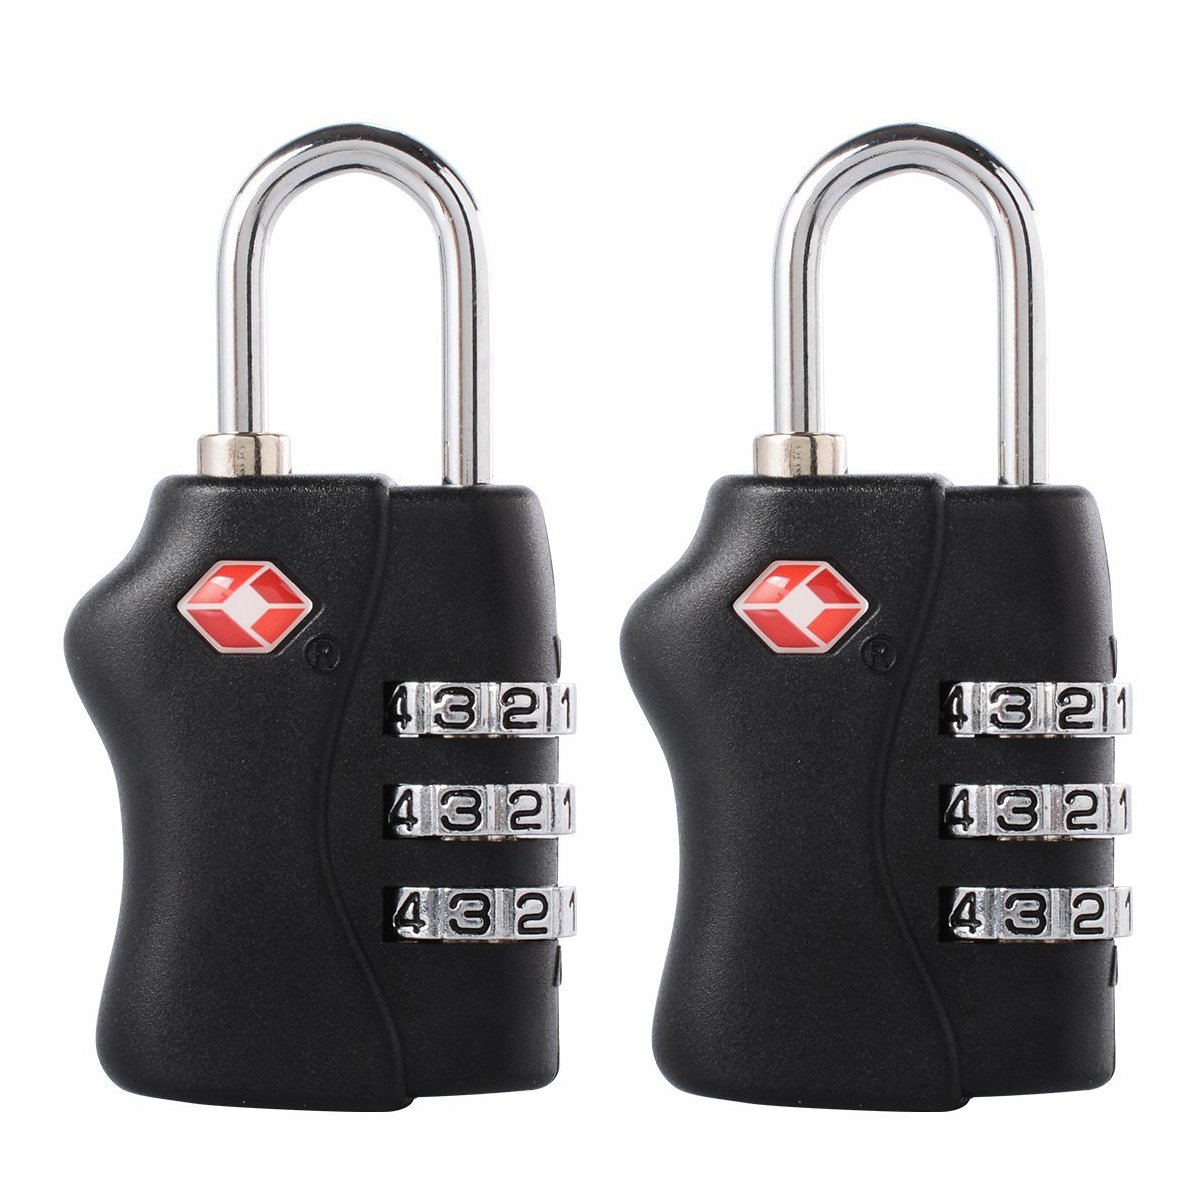 2pcs TSA Approved Luggage Travel Locks - 3 Dial Combination Padlock Security For Suitcases, Bags, Gym Lockers(Black) Sxstar